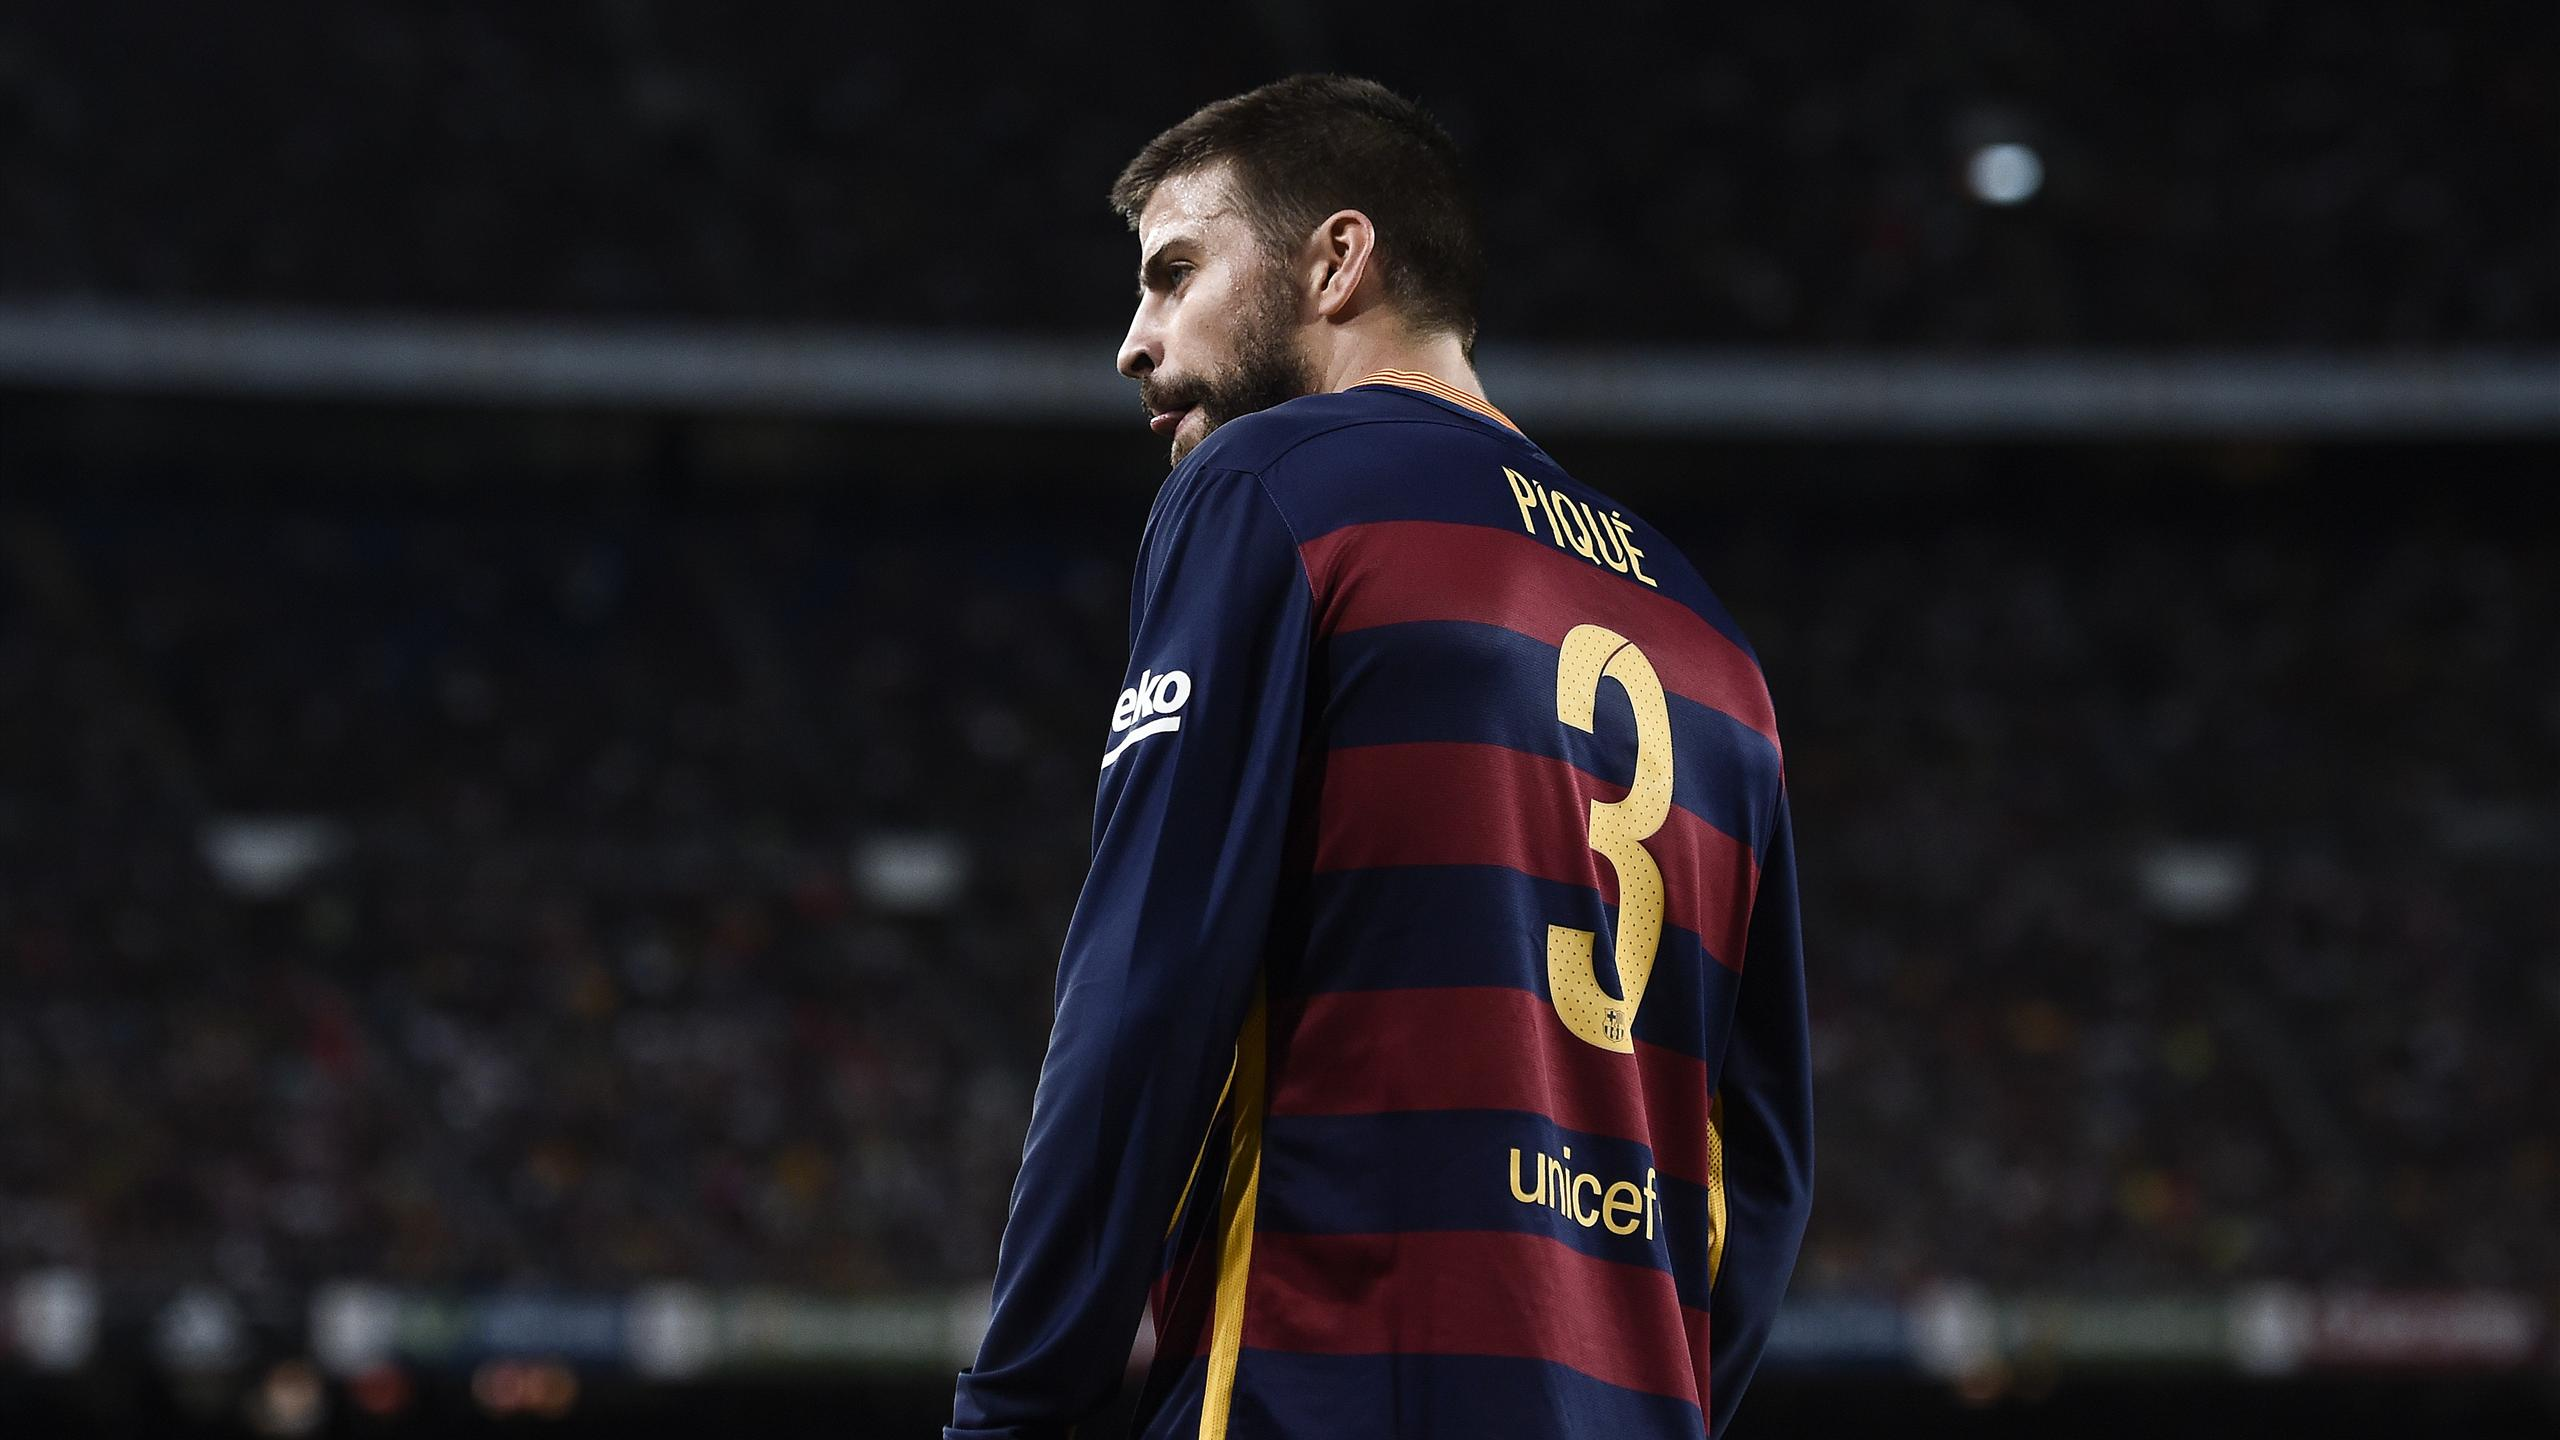 Barcelona's Gerard Pique was sent off against Athletic Bilbao